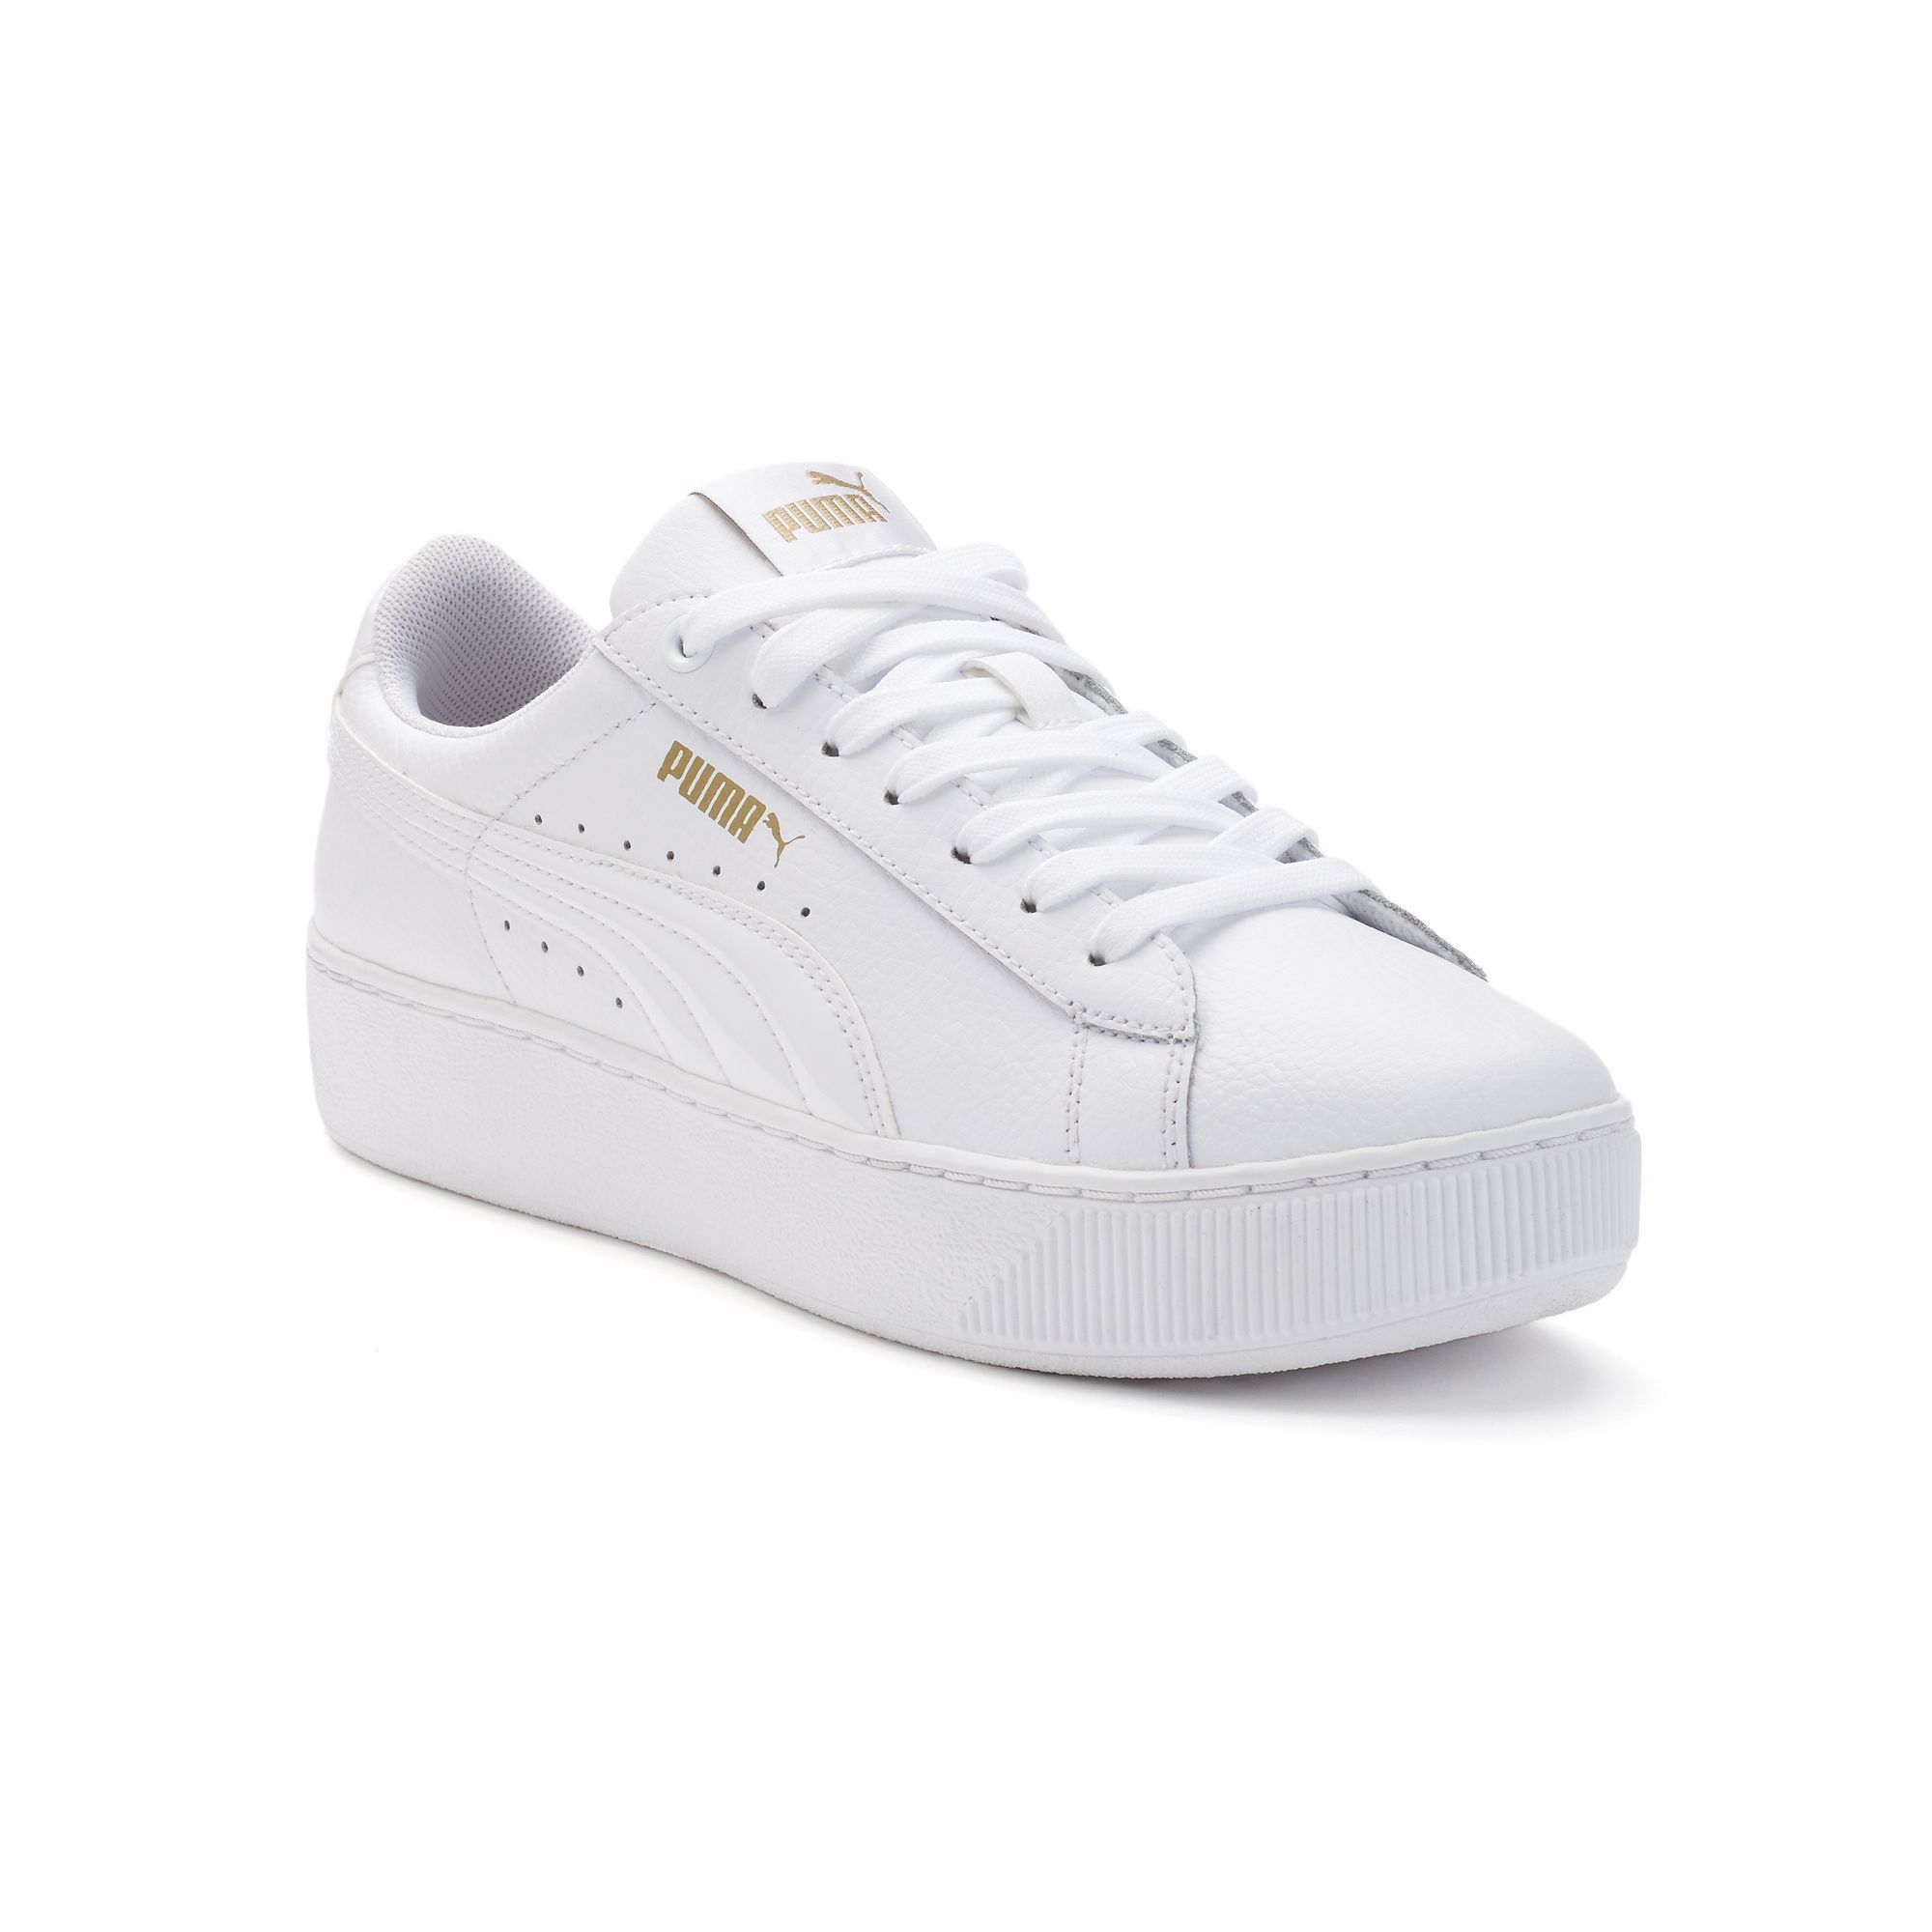 a4d1faf0c25 PUMA Vikky Platform Women's Leather Shoes in 2019 | Products | Puma ...